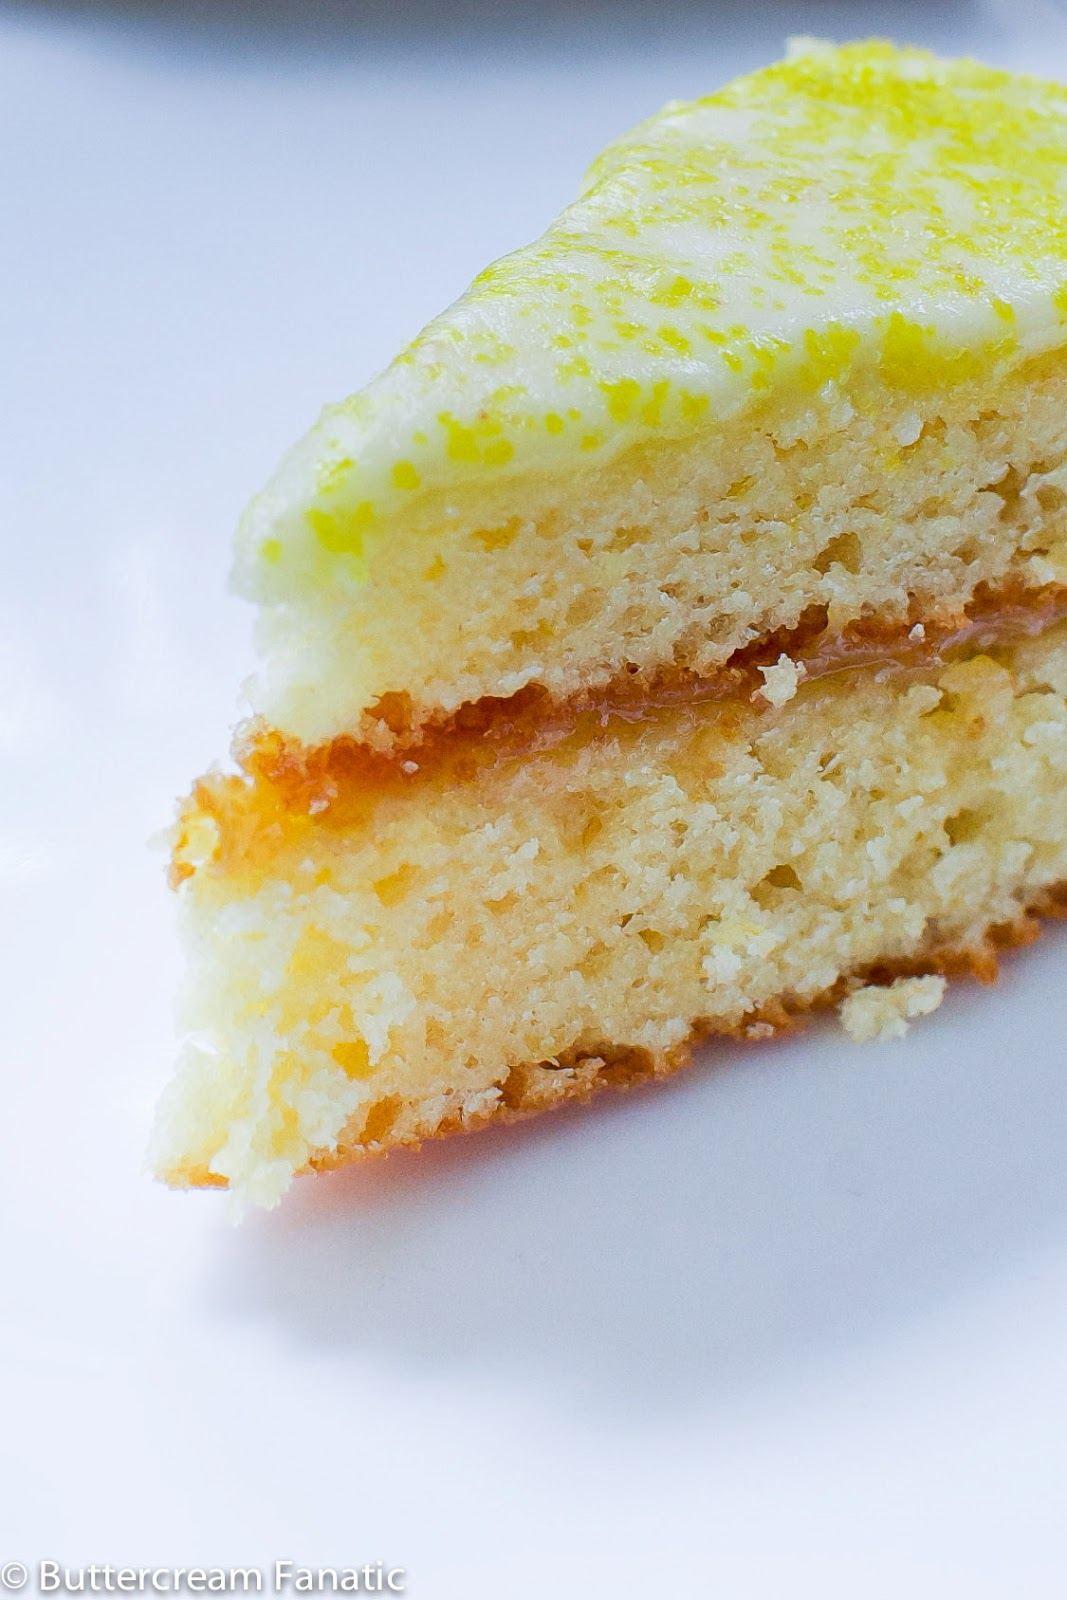 Buttercream Fanatic: Lemon Layer Cake with Lemon Glaze and Lemon Curd